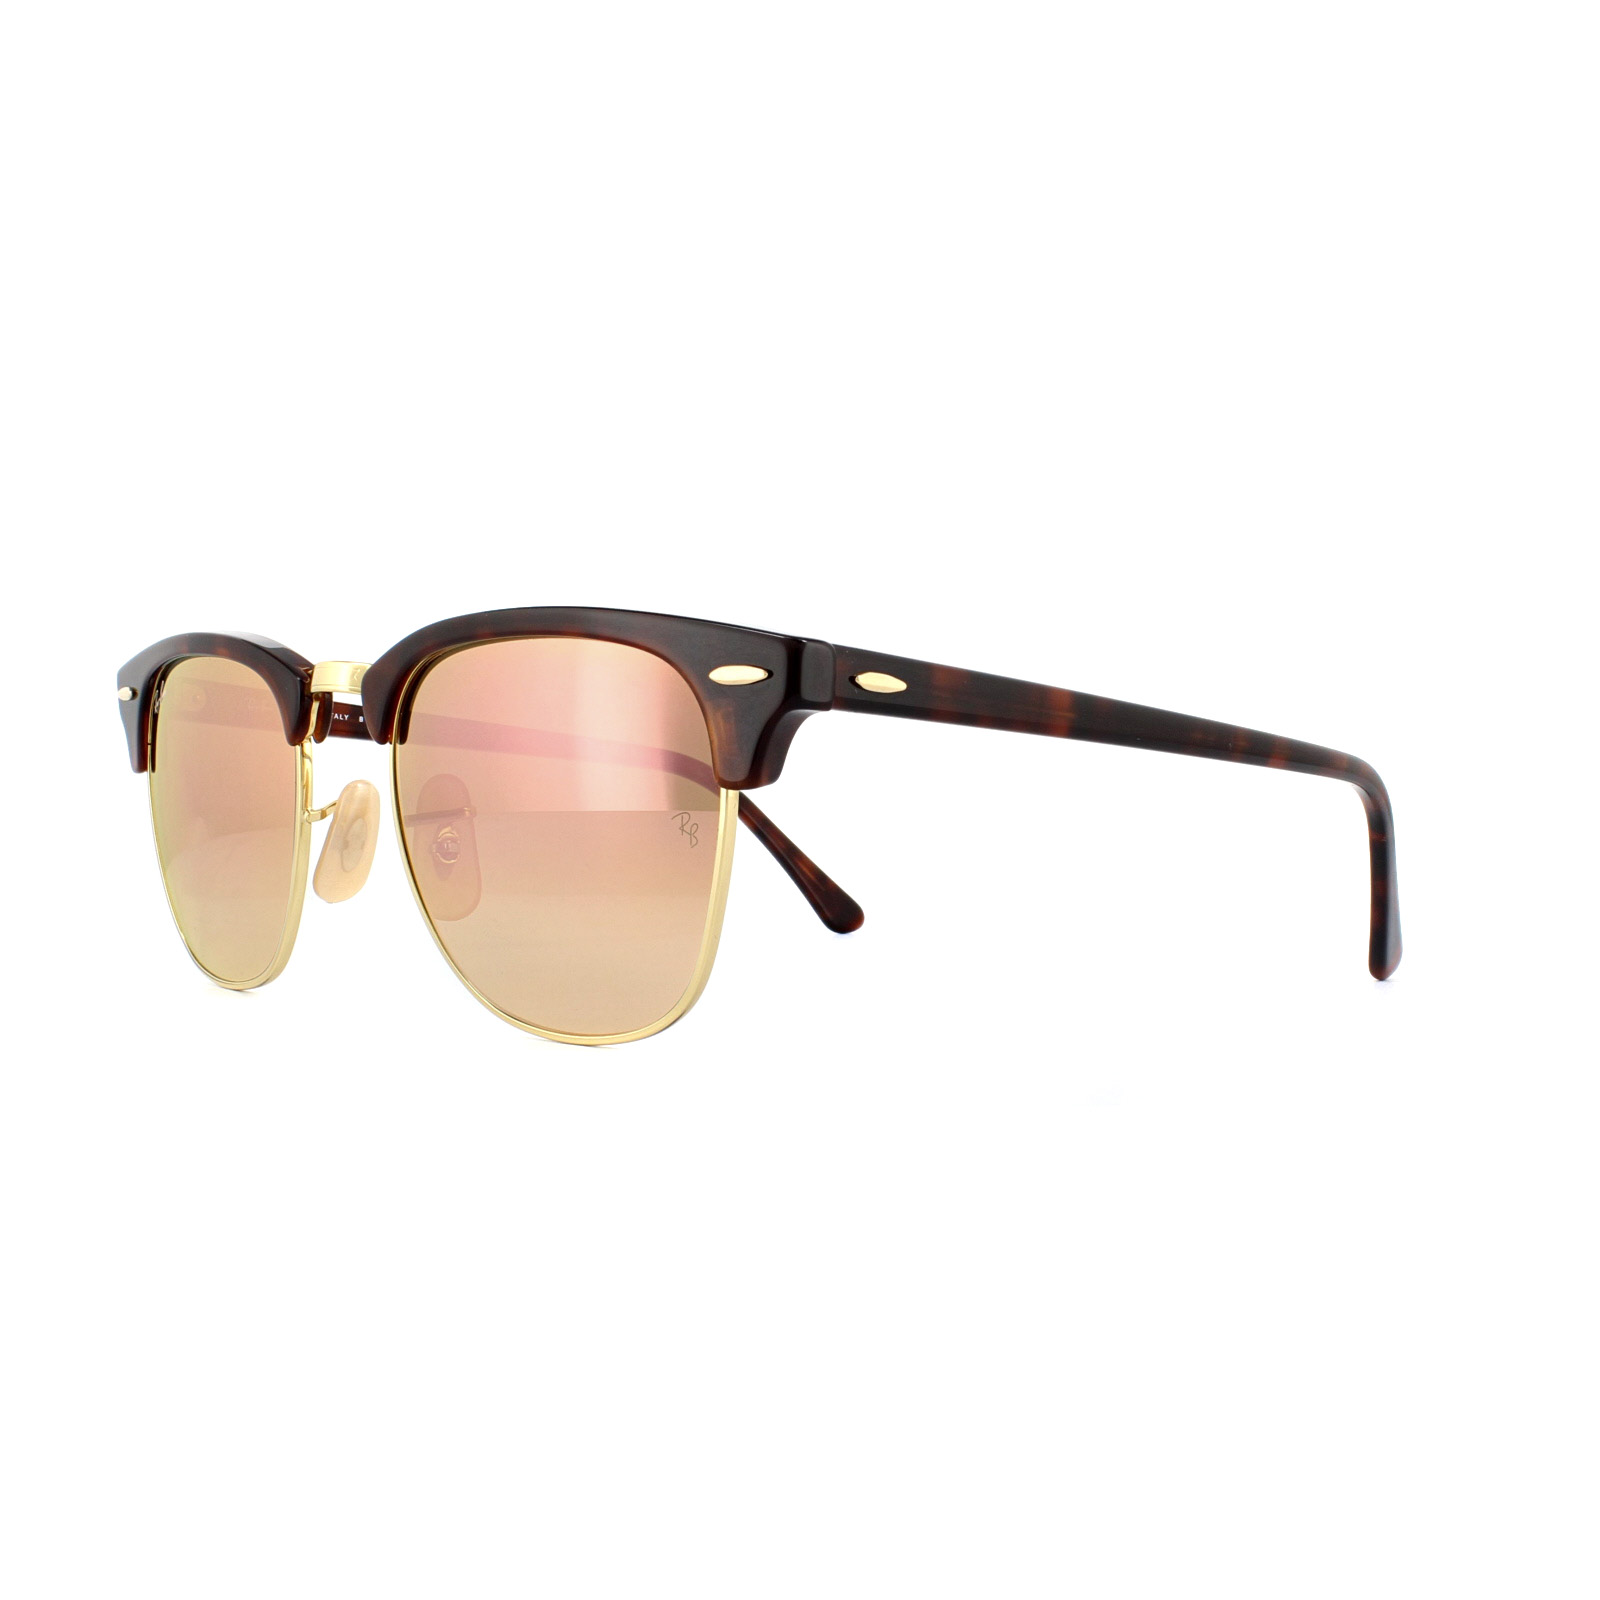 3b3242b149 Cheap Ray-Ban Clubmaster 3016 Sunglasses - Discounted Sunglasses